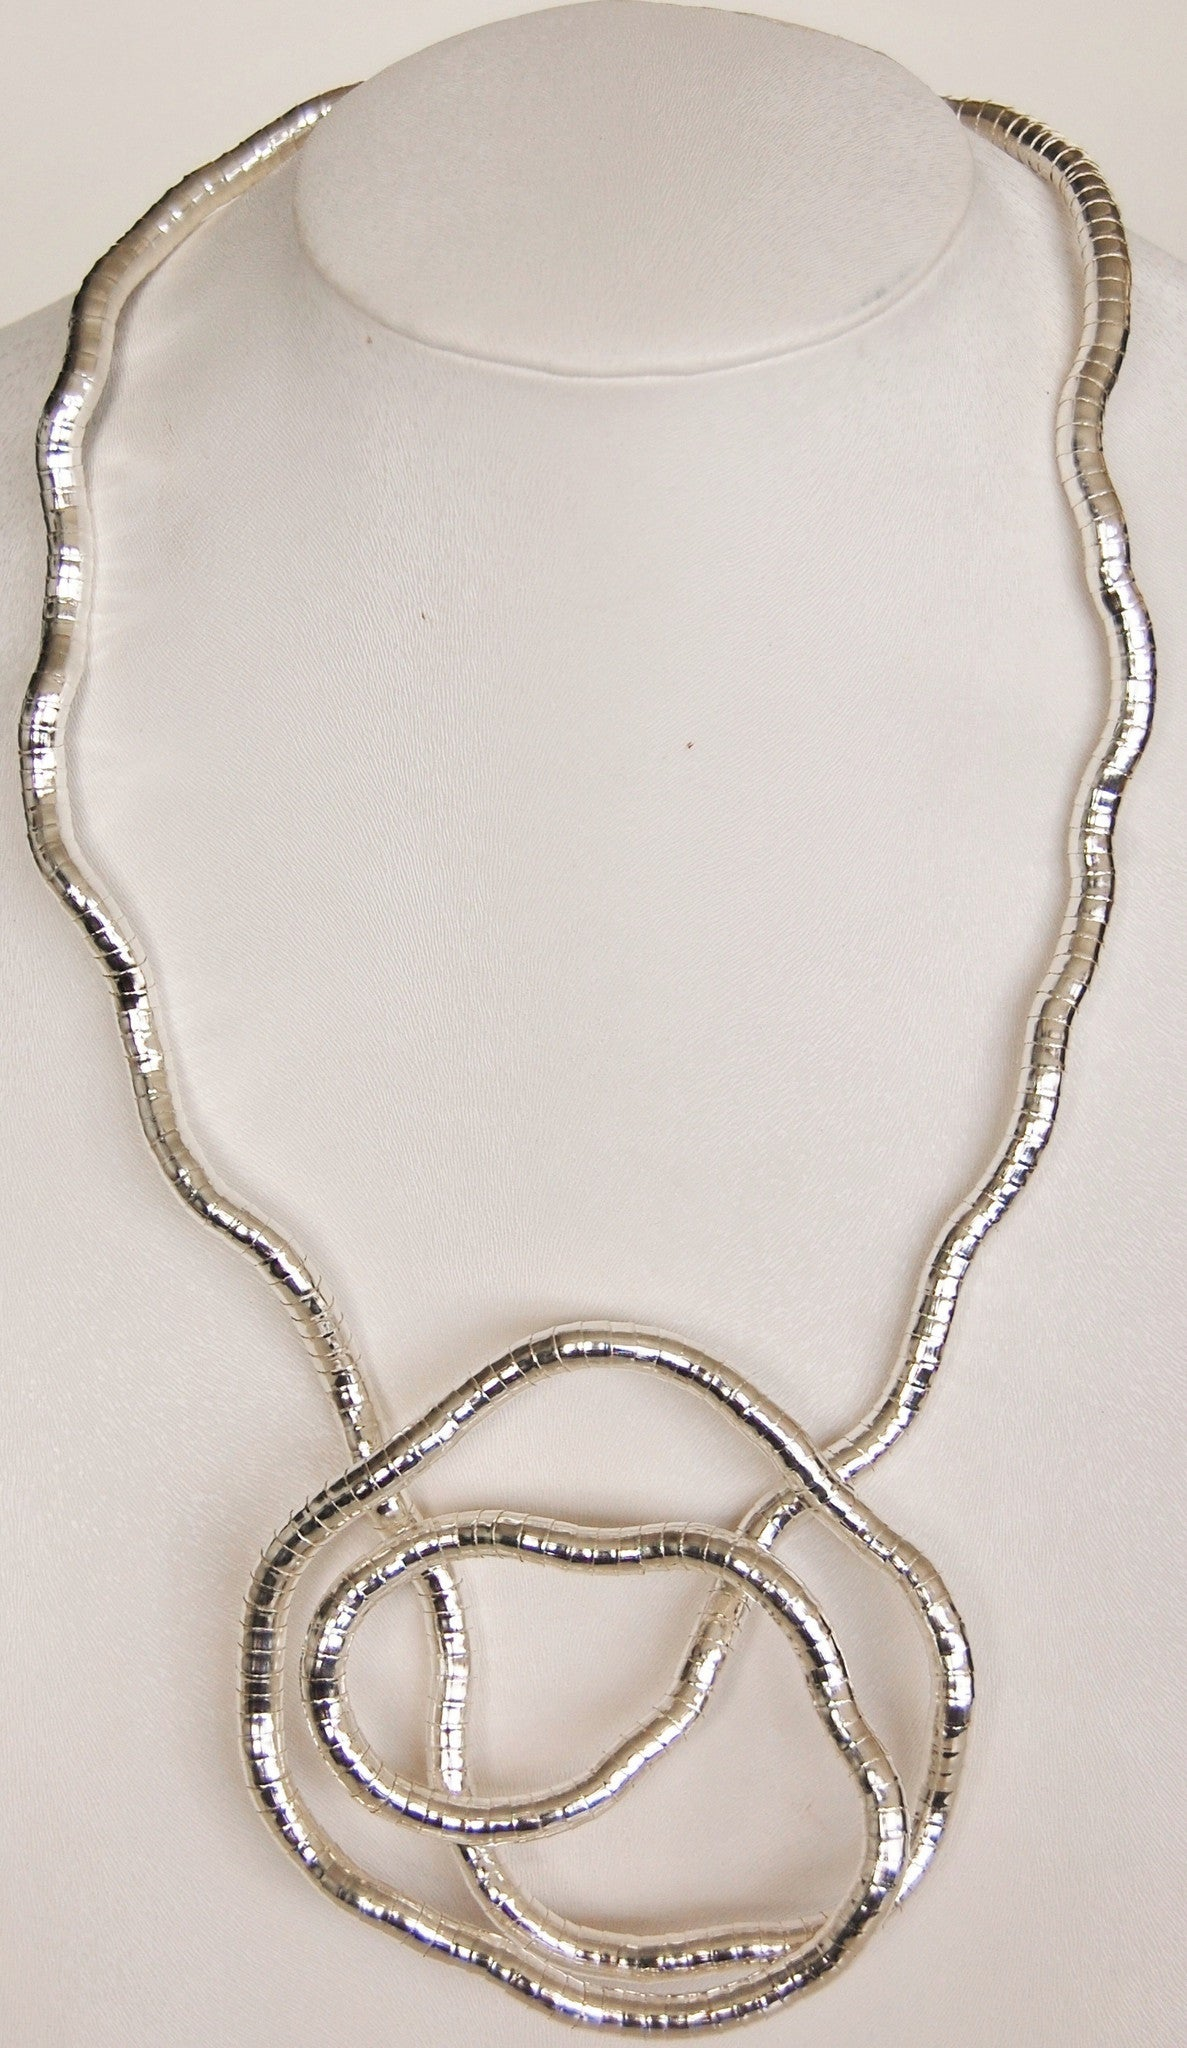 "Silver Snake Twist, 5mm Thick, 48"" Circumference"